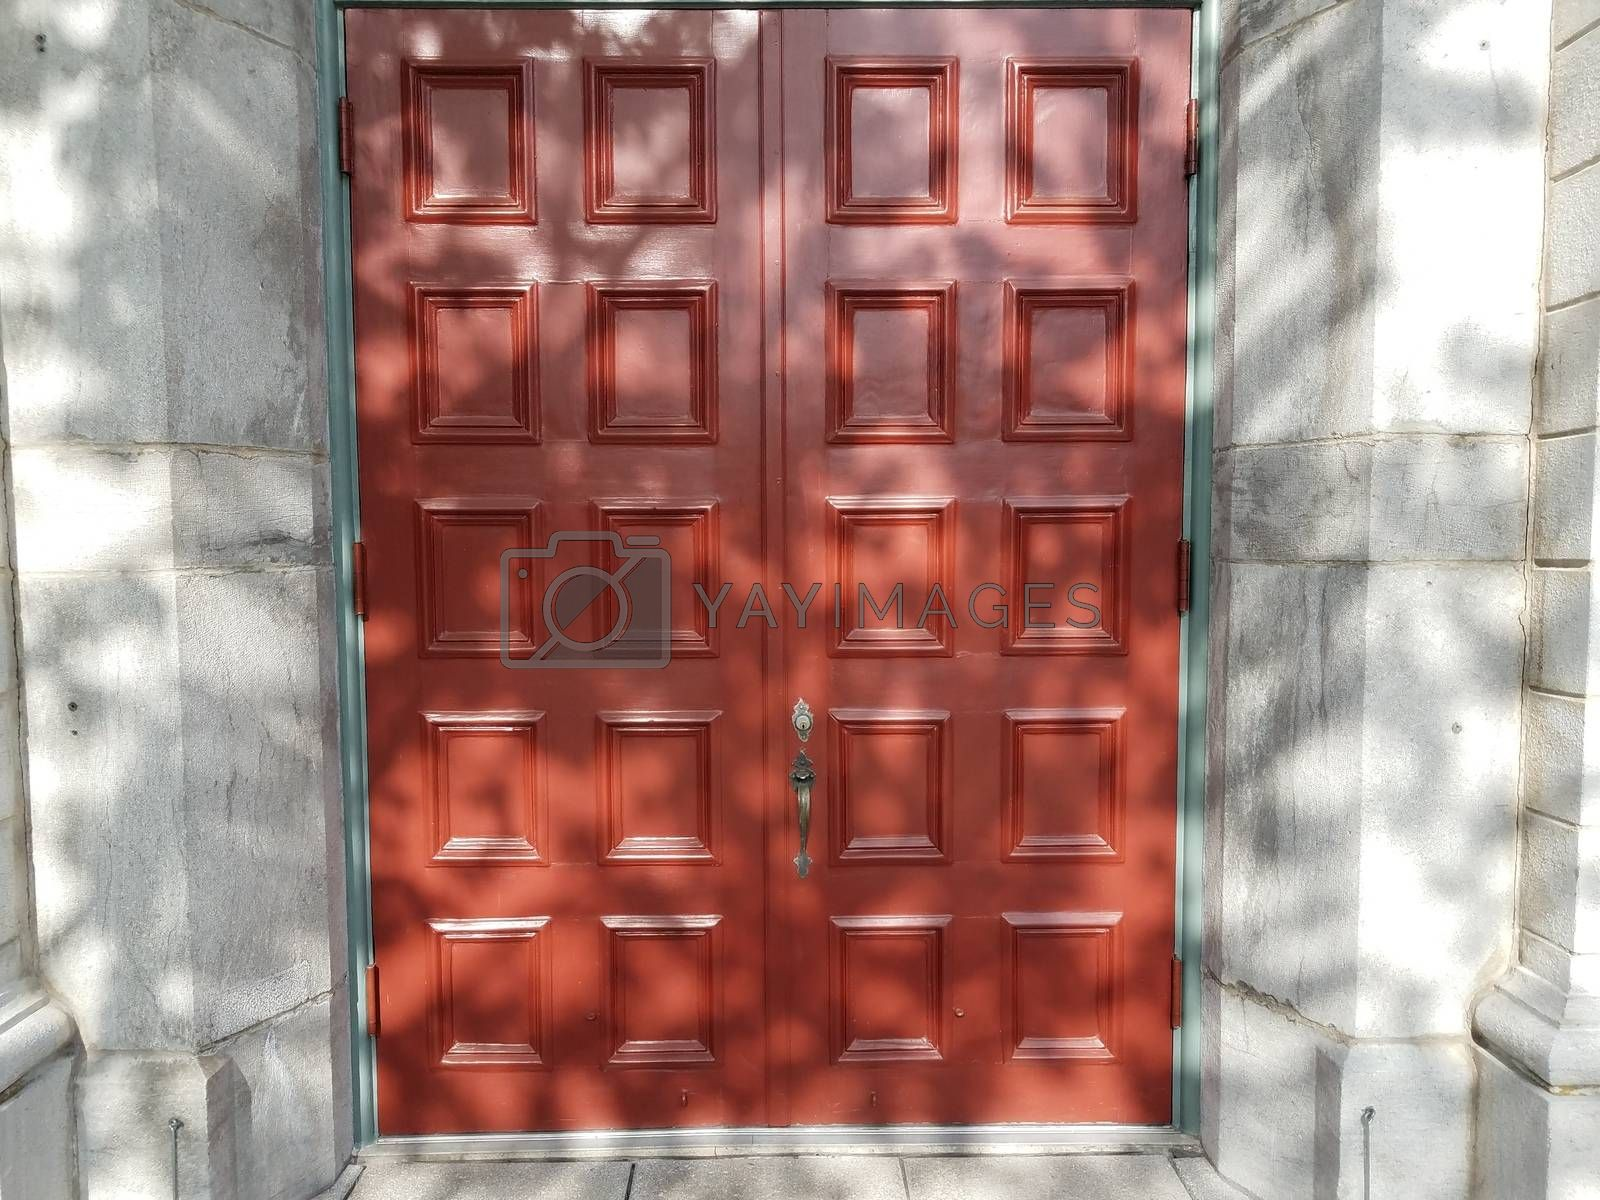 Royalty free image of white wall and red door with squares by stockphotofan1